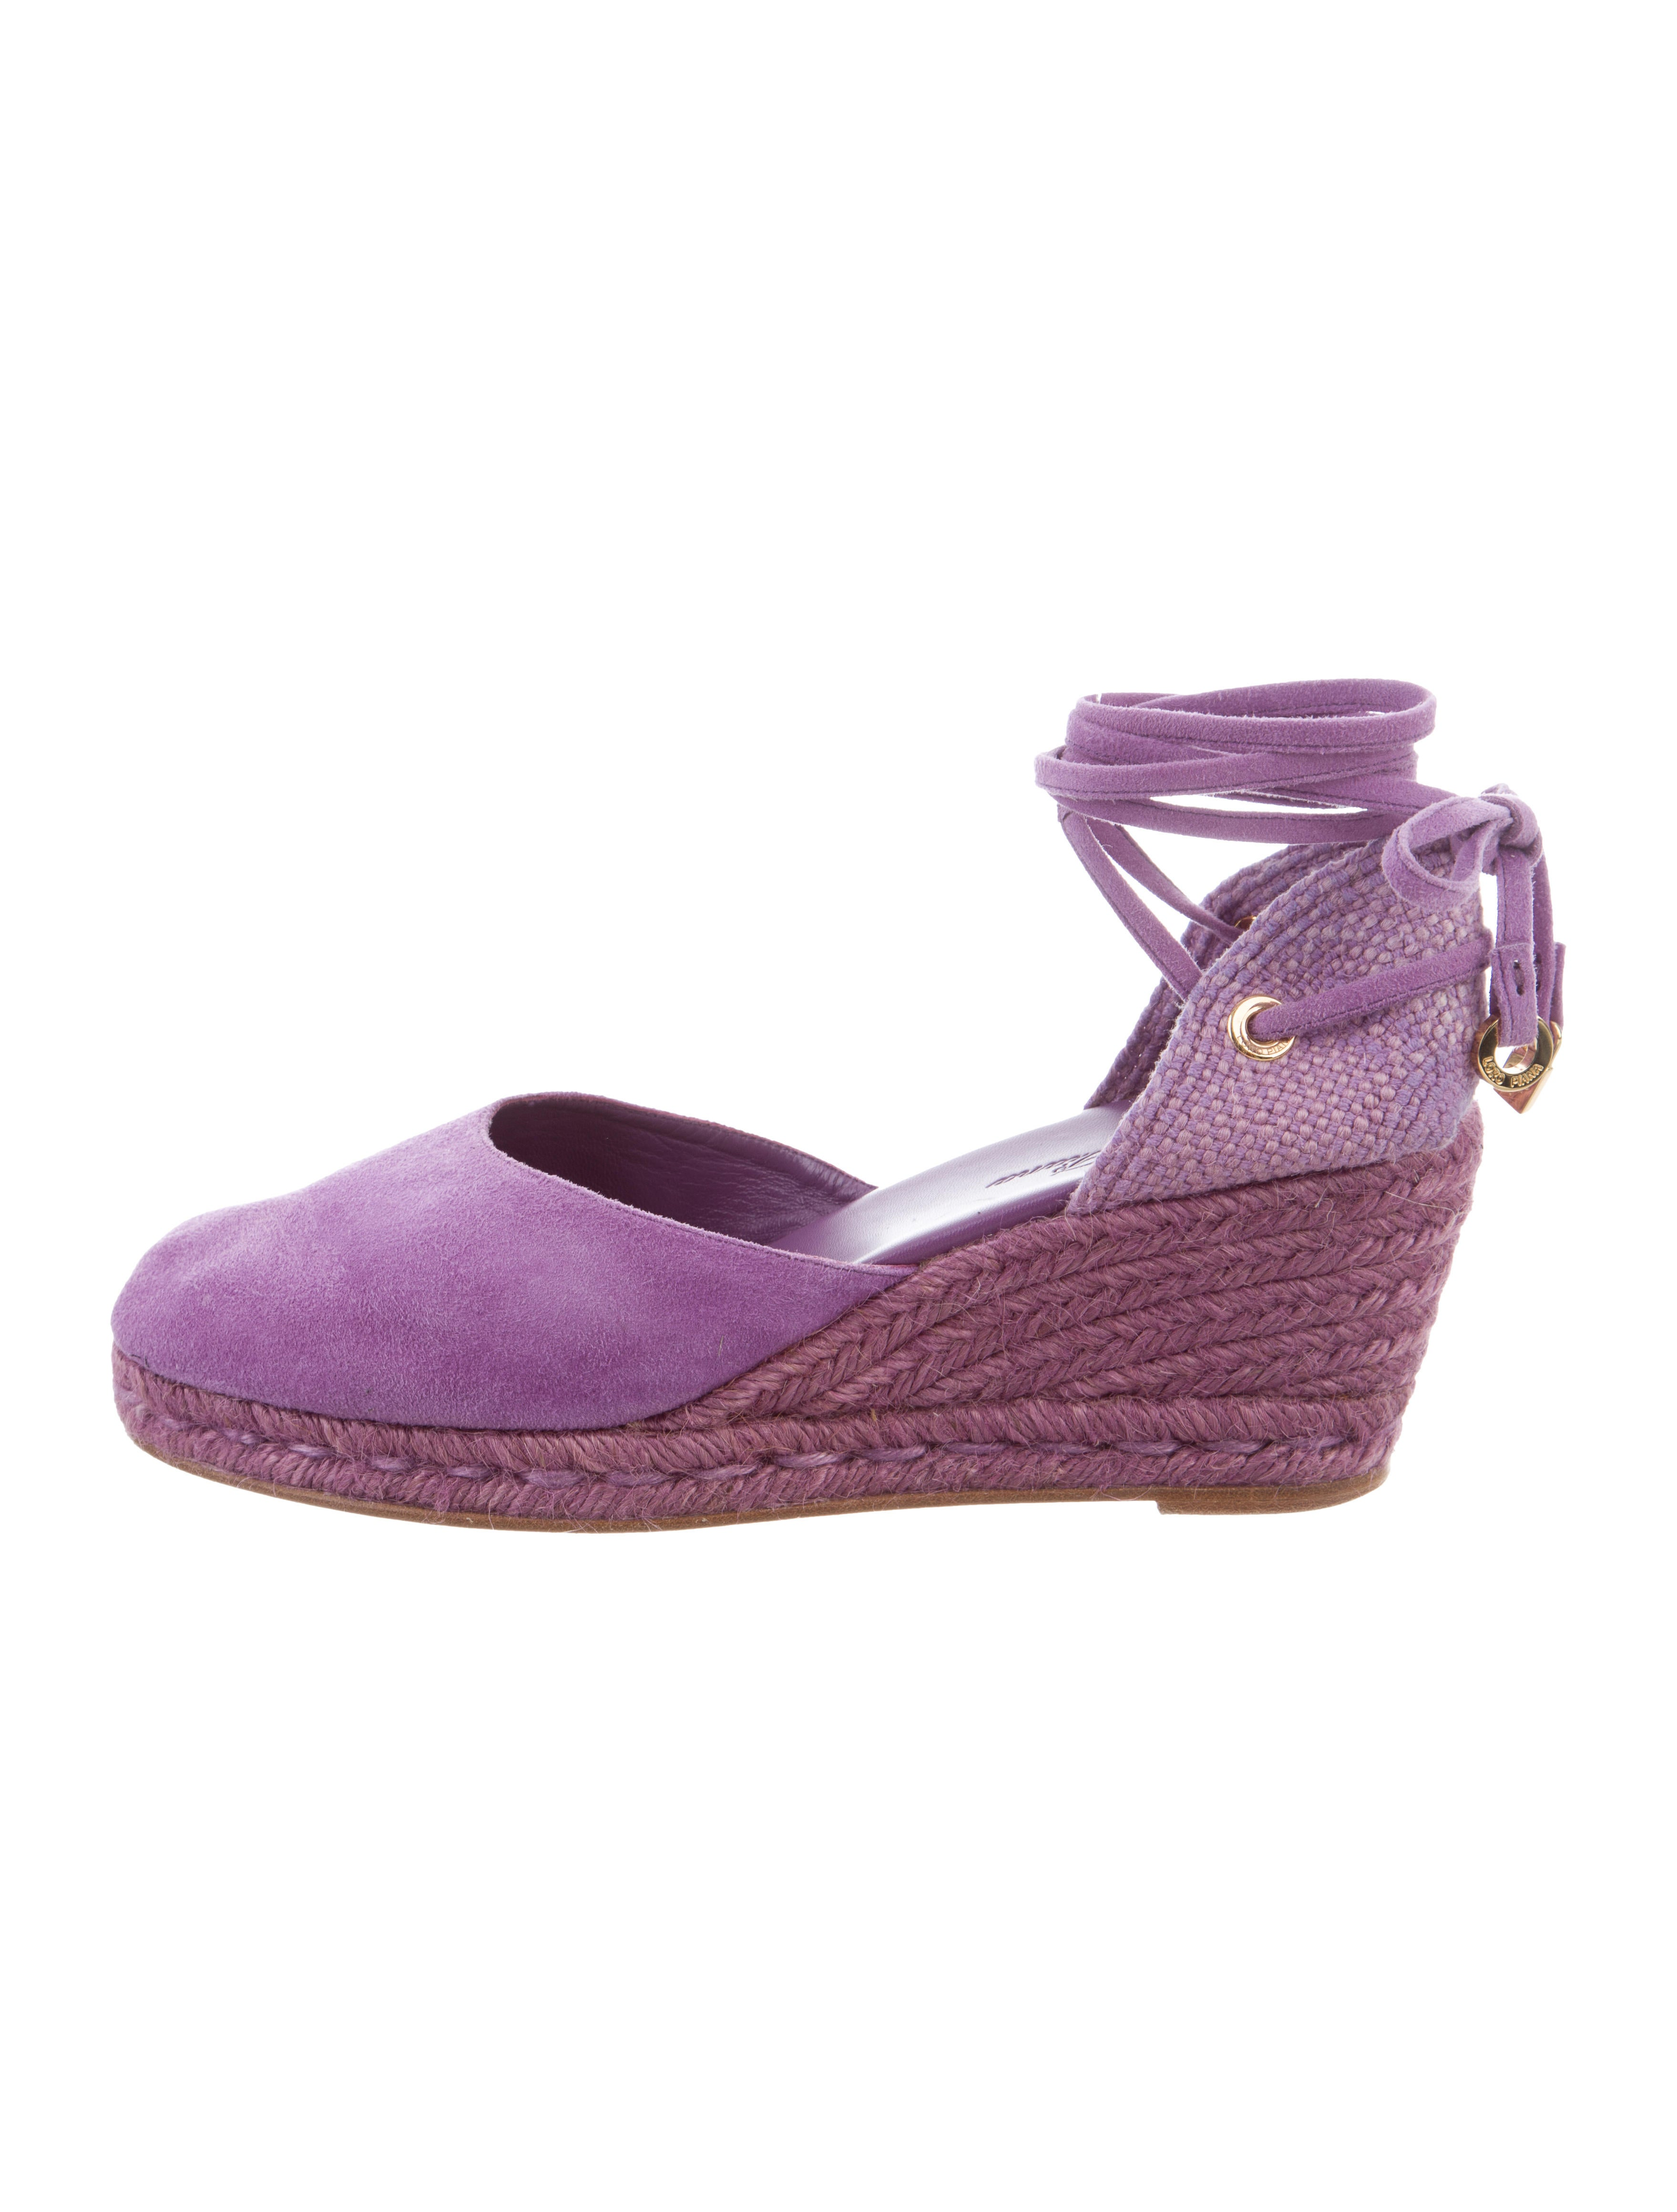 Loro Piana Suede Espadrille Wedges under $60 reliable cheap online nicekicks cheap online RleCD6rR3X